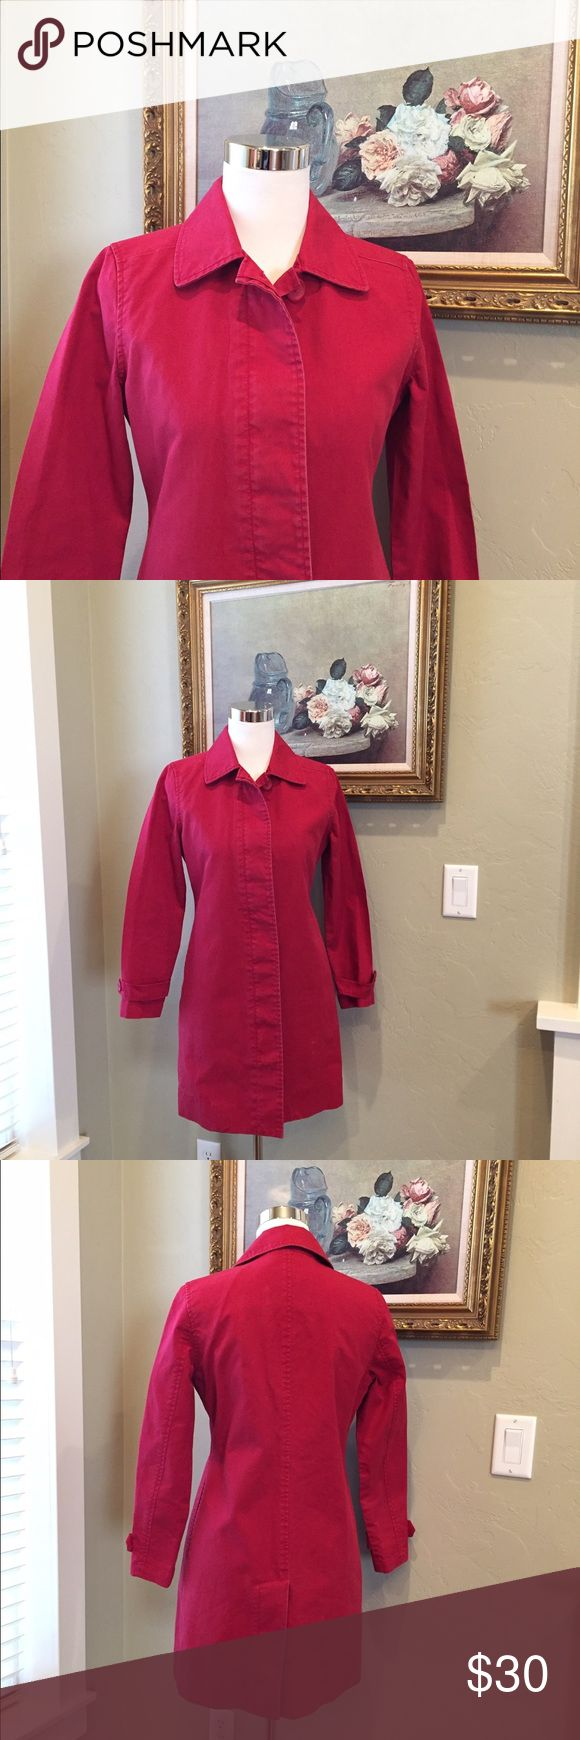 GAP COAT Pretty red khaki coat in very good condition. Side pockets and long zipper and button down front. GAP Jackets & Coats Trench Coats